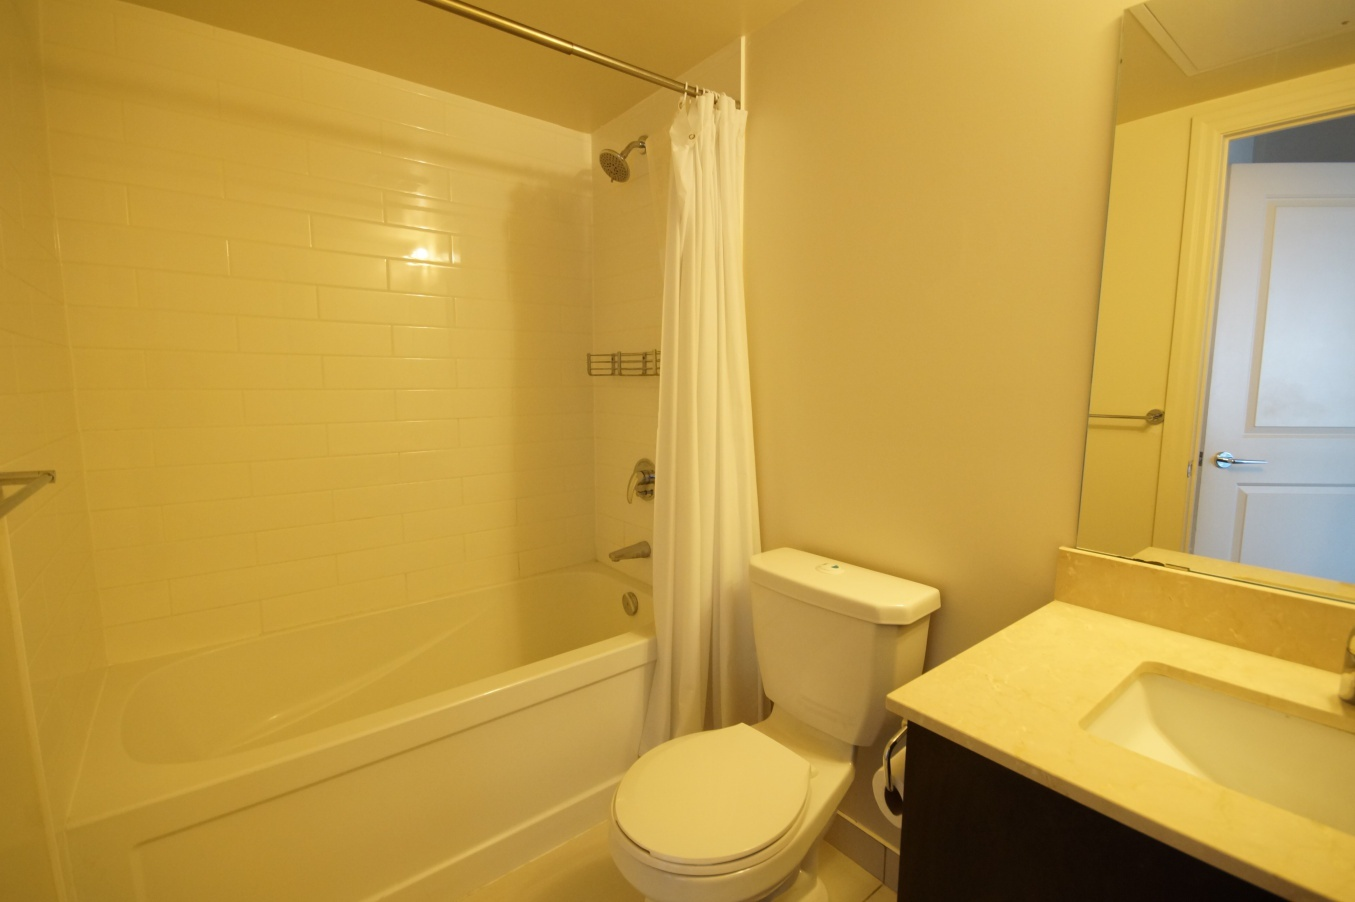 Condo for rent at 8130 Birchmount Rd, Markham, ON. This is the bathroom.